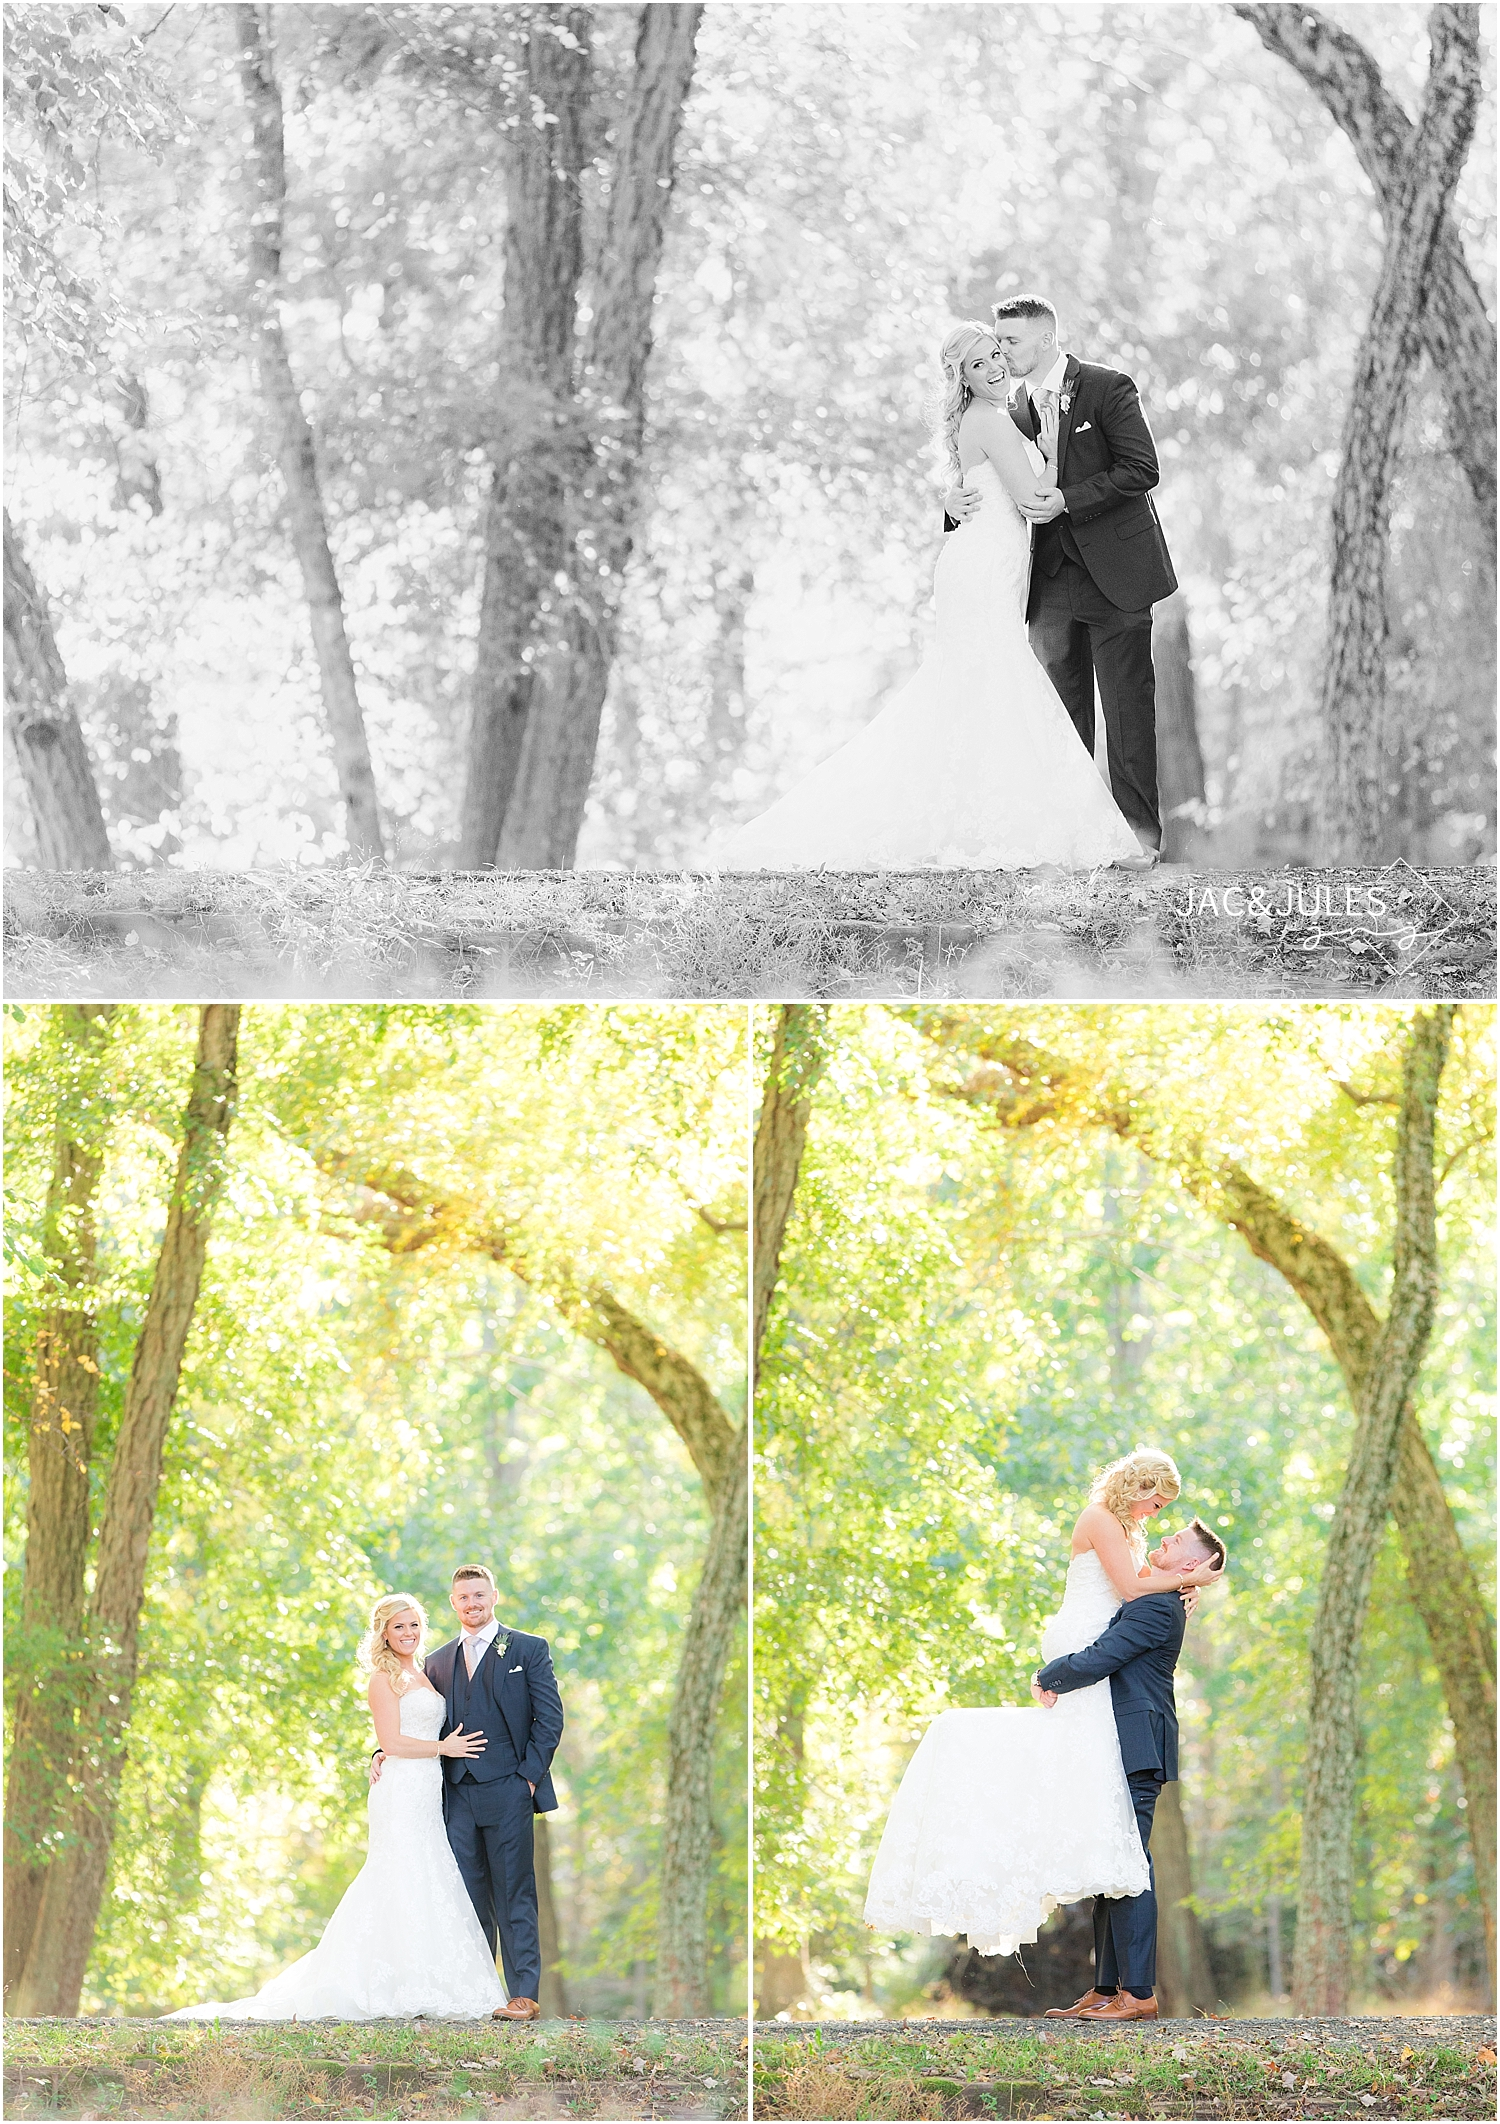 jacnjules uses natural light for bride and groom portraits at Allaire State Park